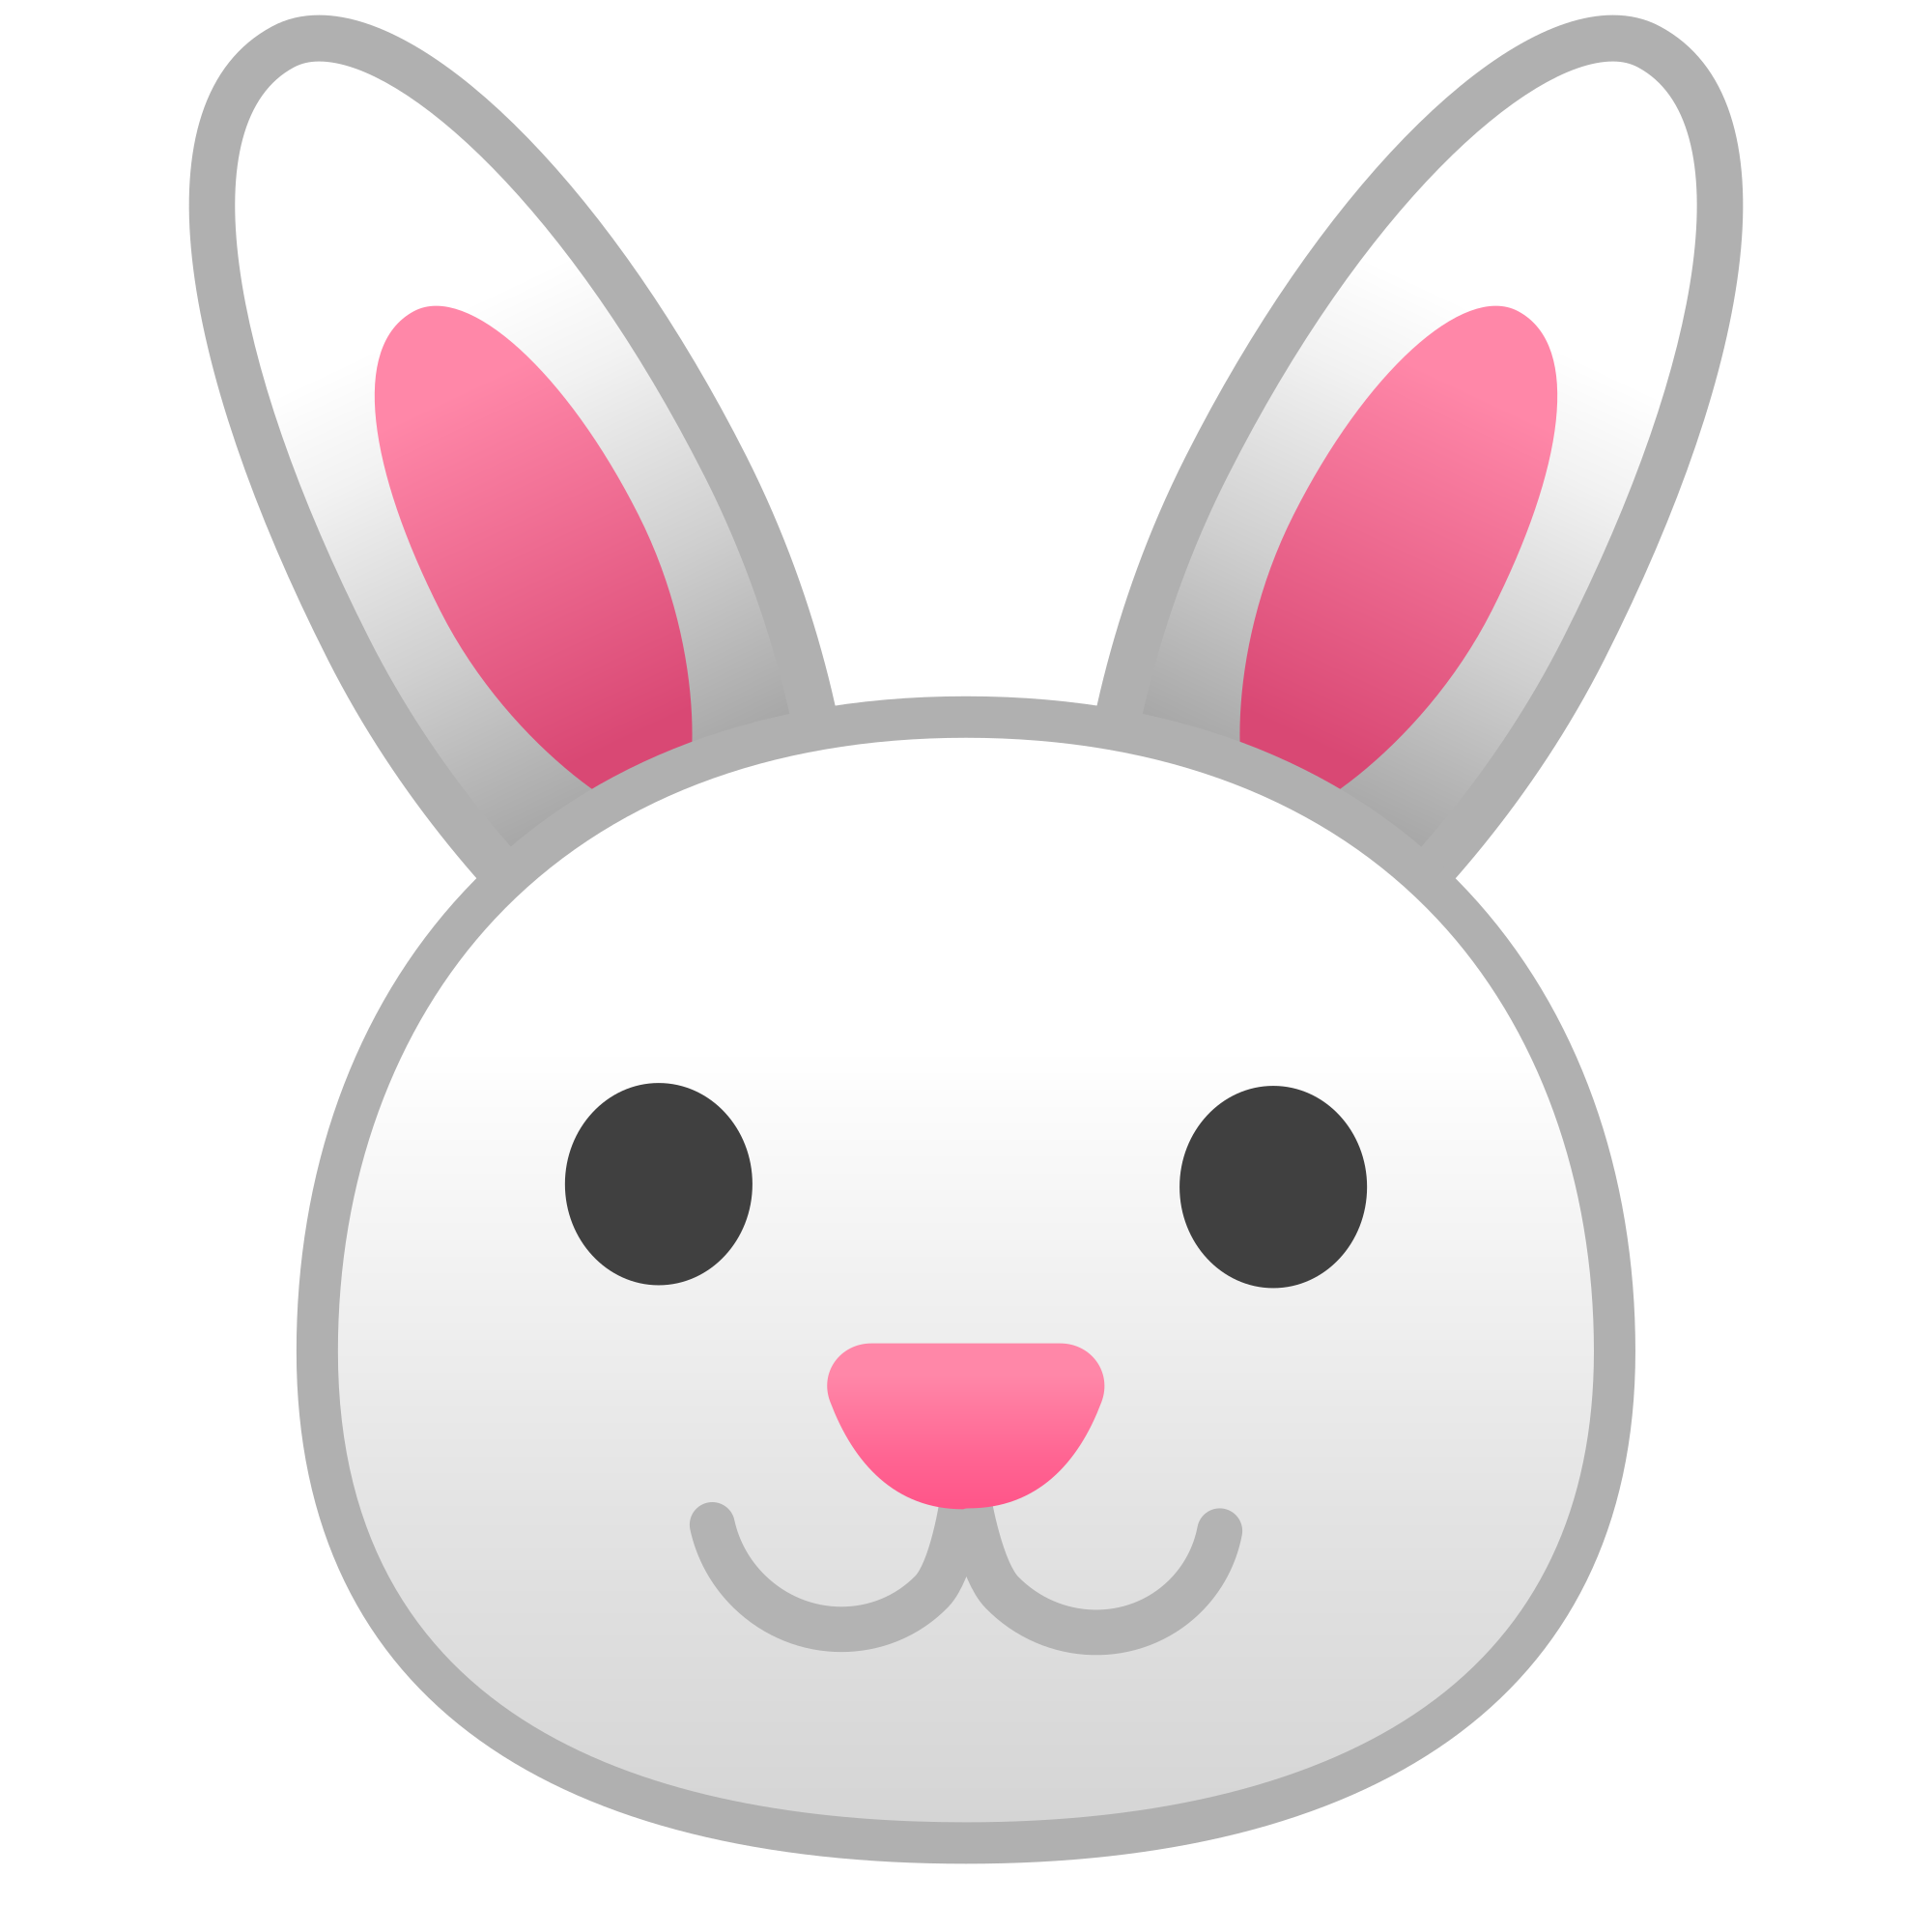 svg transparent library Vector emojis bunny.  easter head png